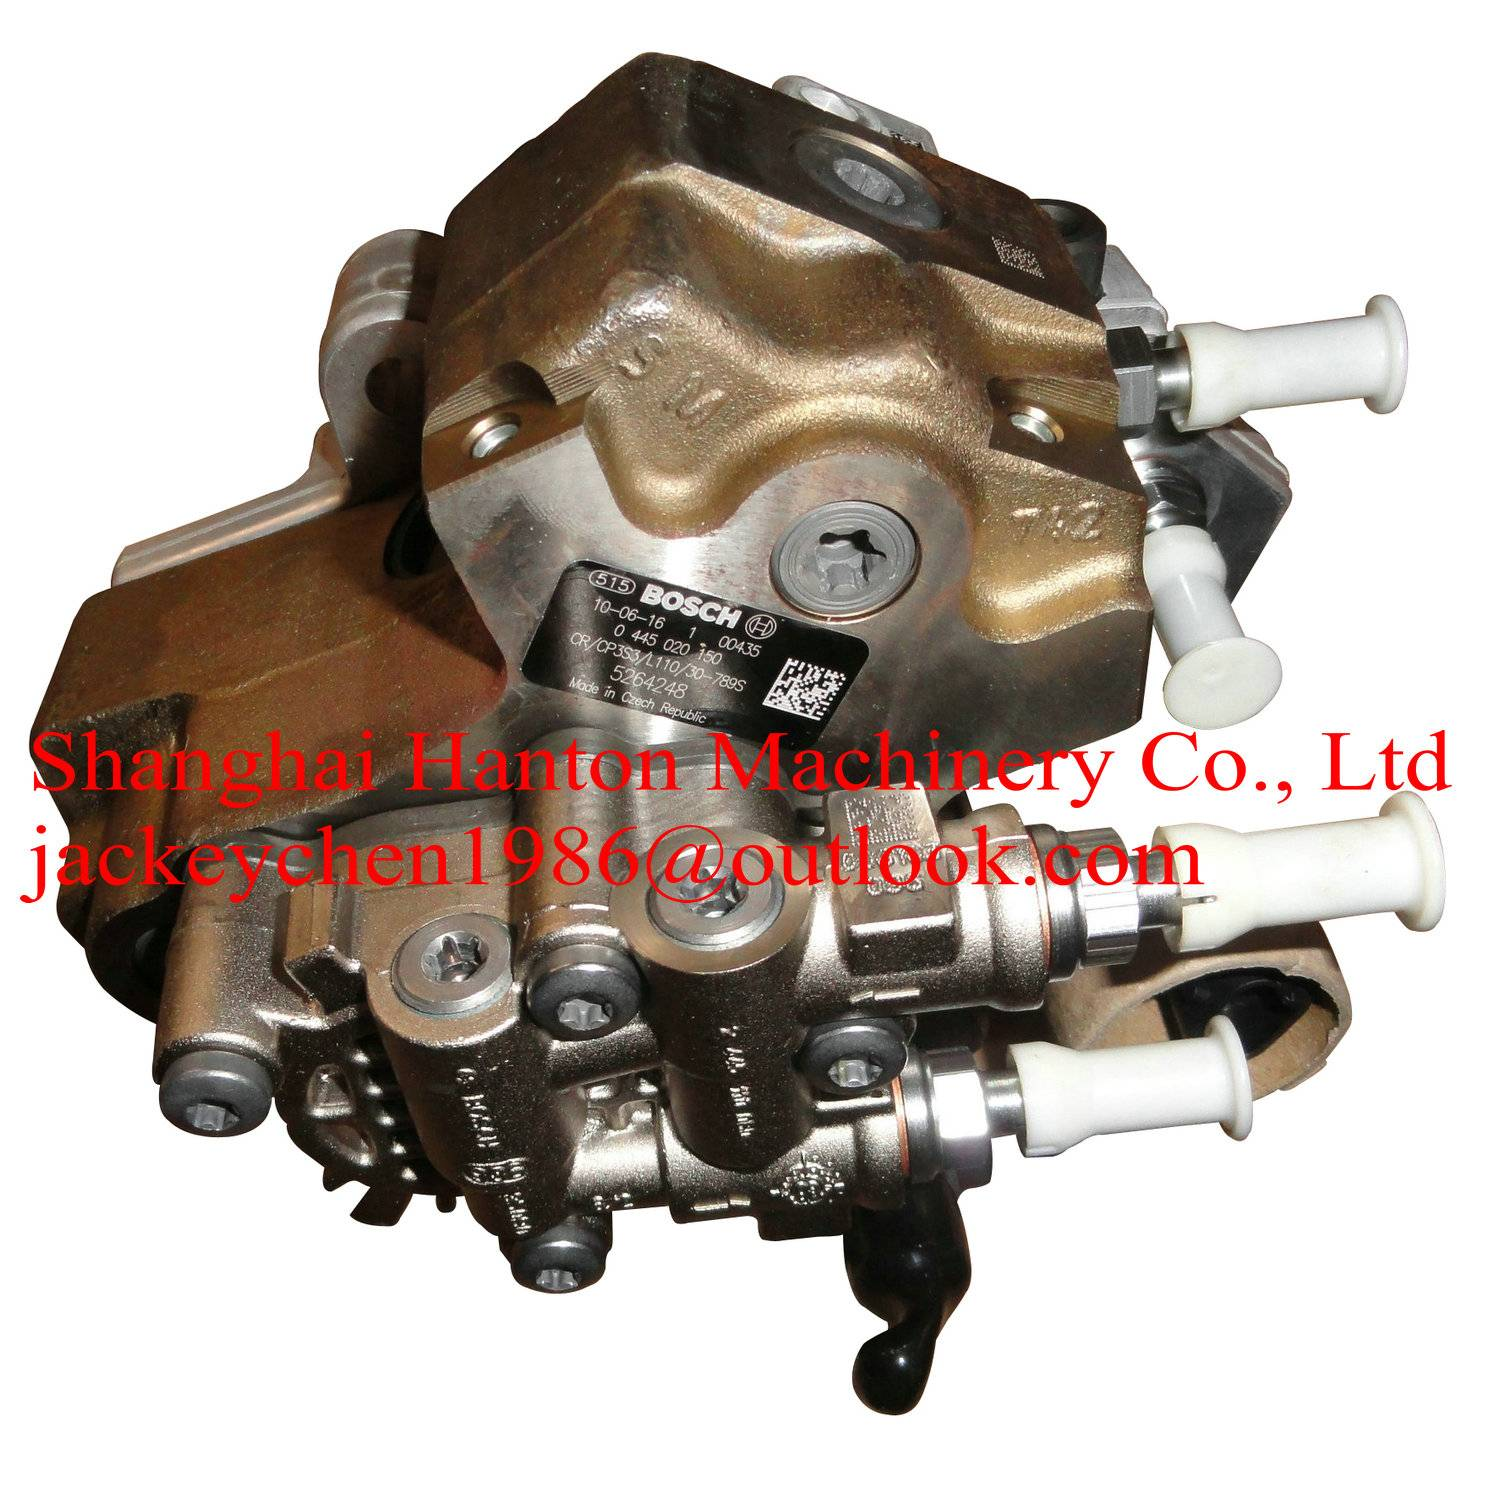 Sell Cummins ISF3.8 and ISBe6.7 diesel engine fuel injection pump 5264248 3971529 4982057 4988595